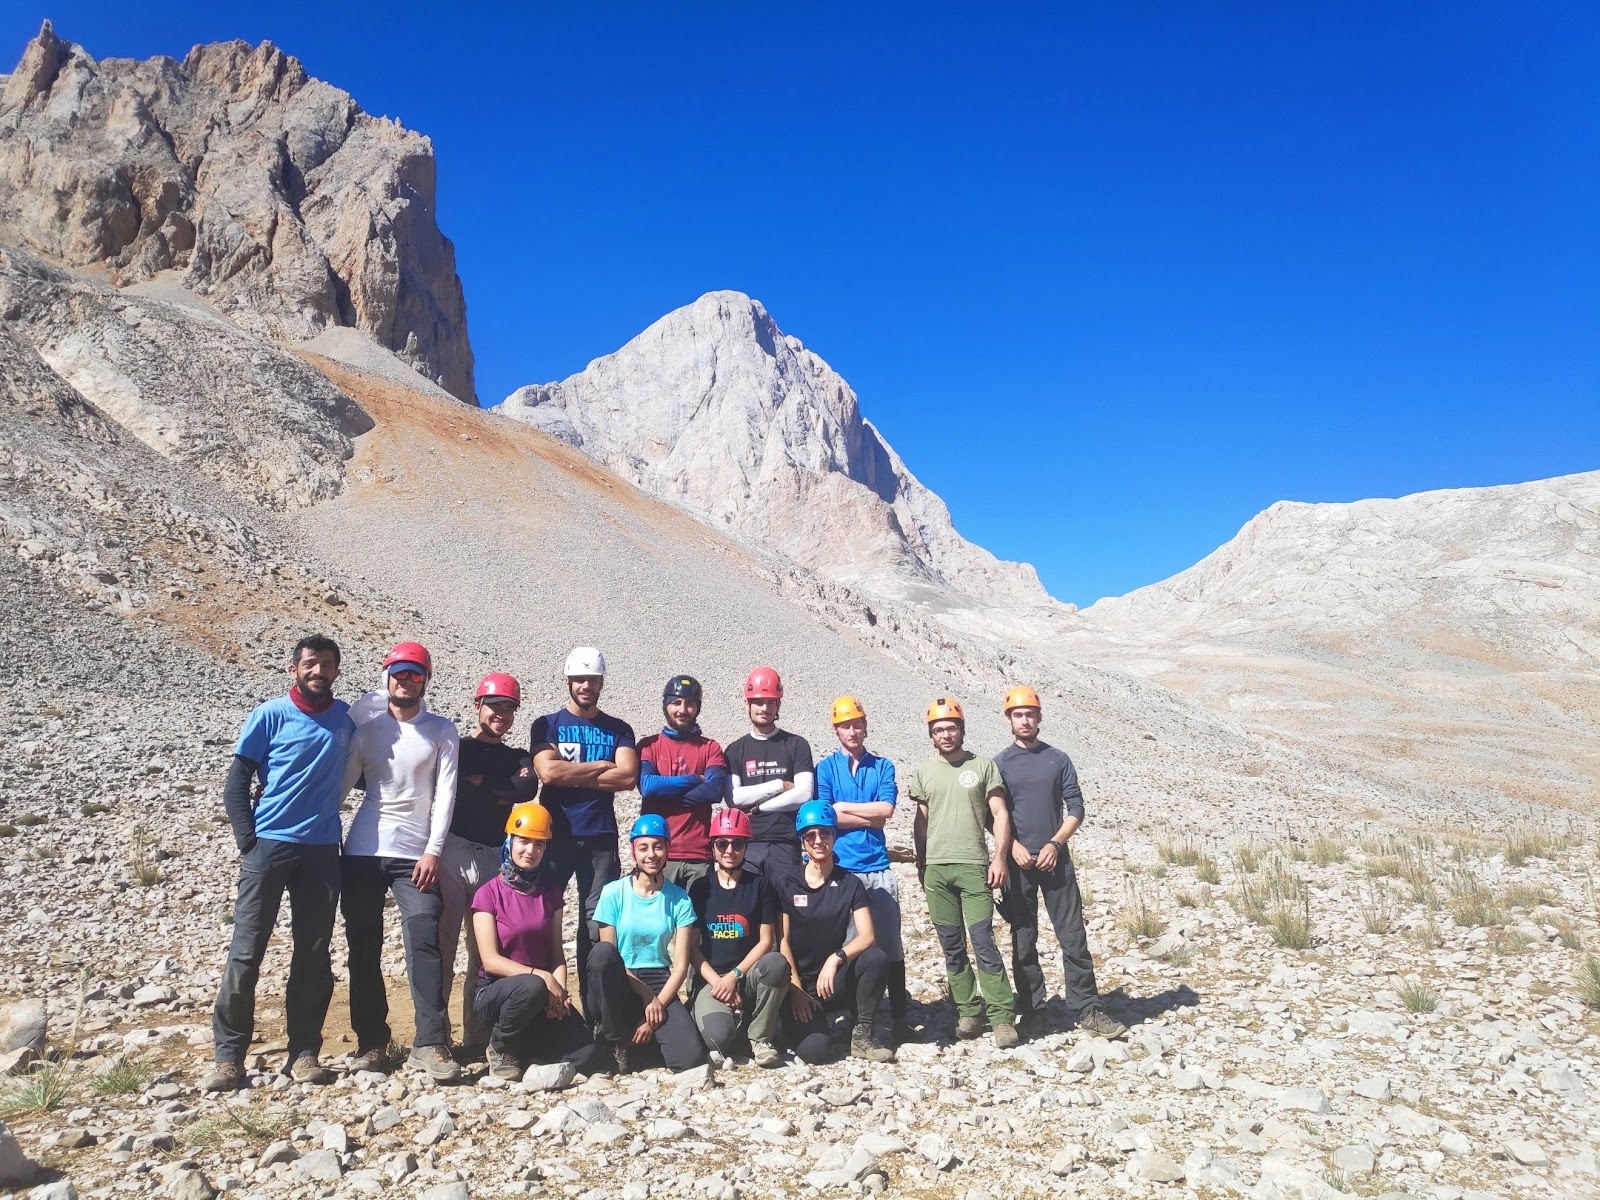 A group of people standing in front of a mountain  Description automatically generated